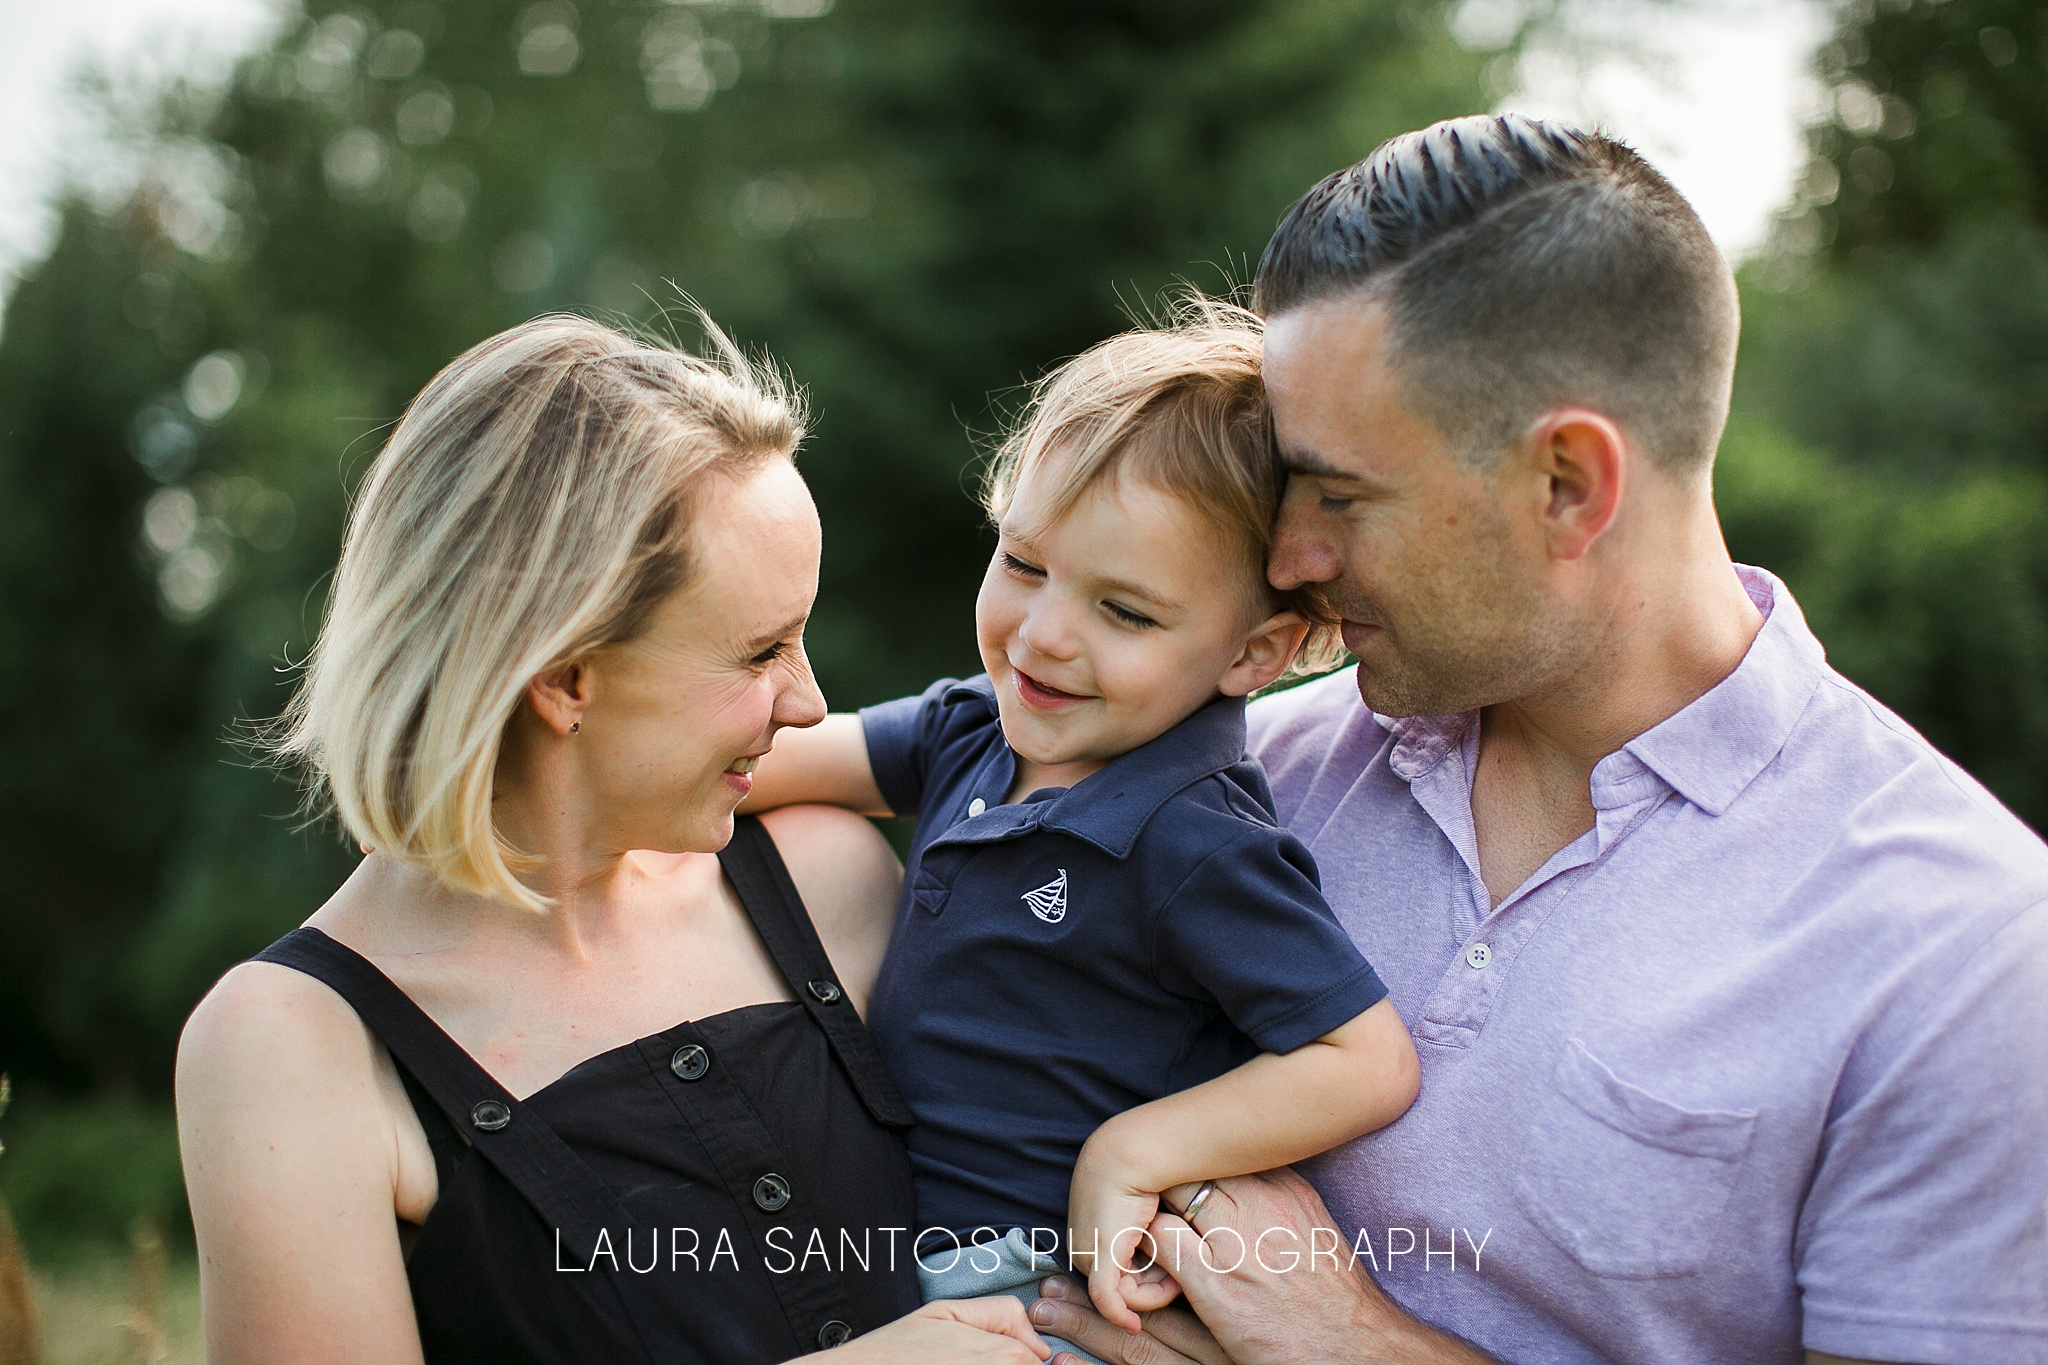 Laura Santos Photography Portland Oregon Family Photographer_1055.jpg